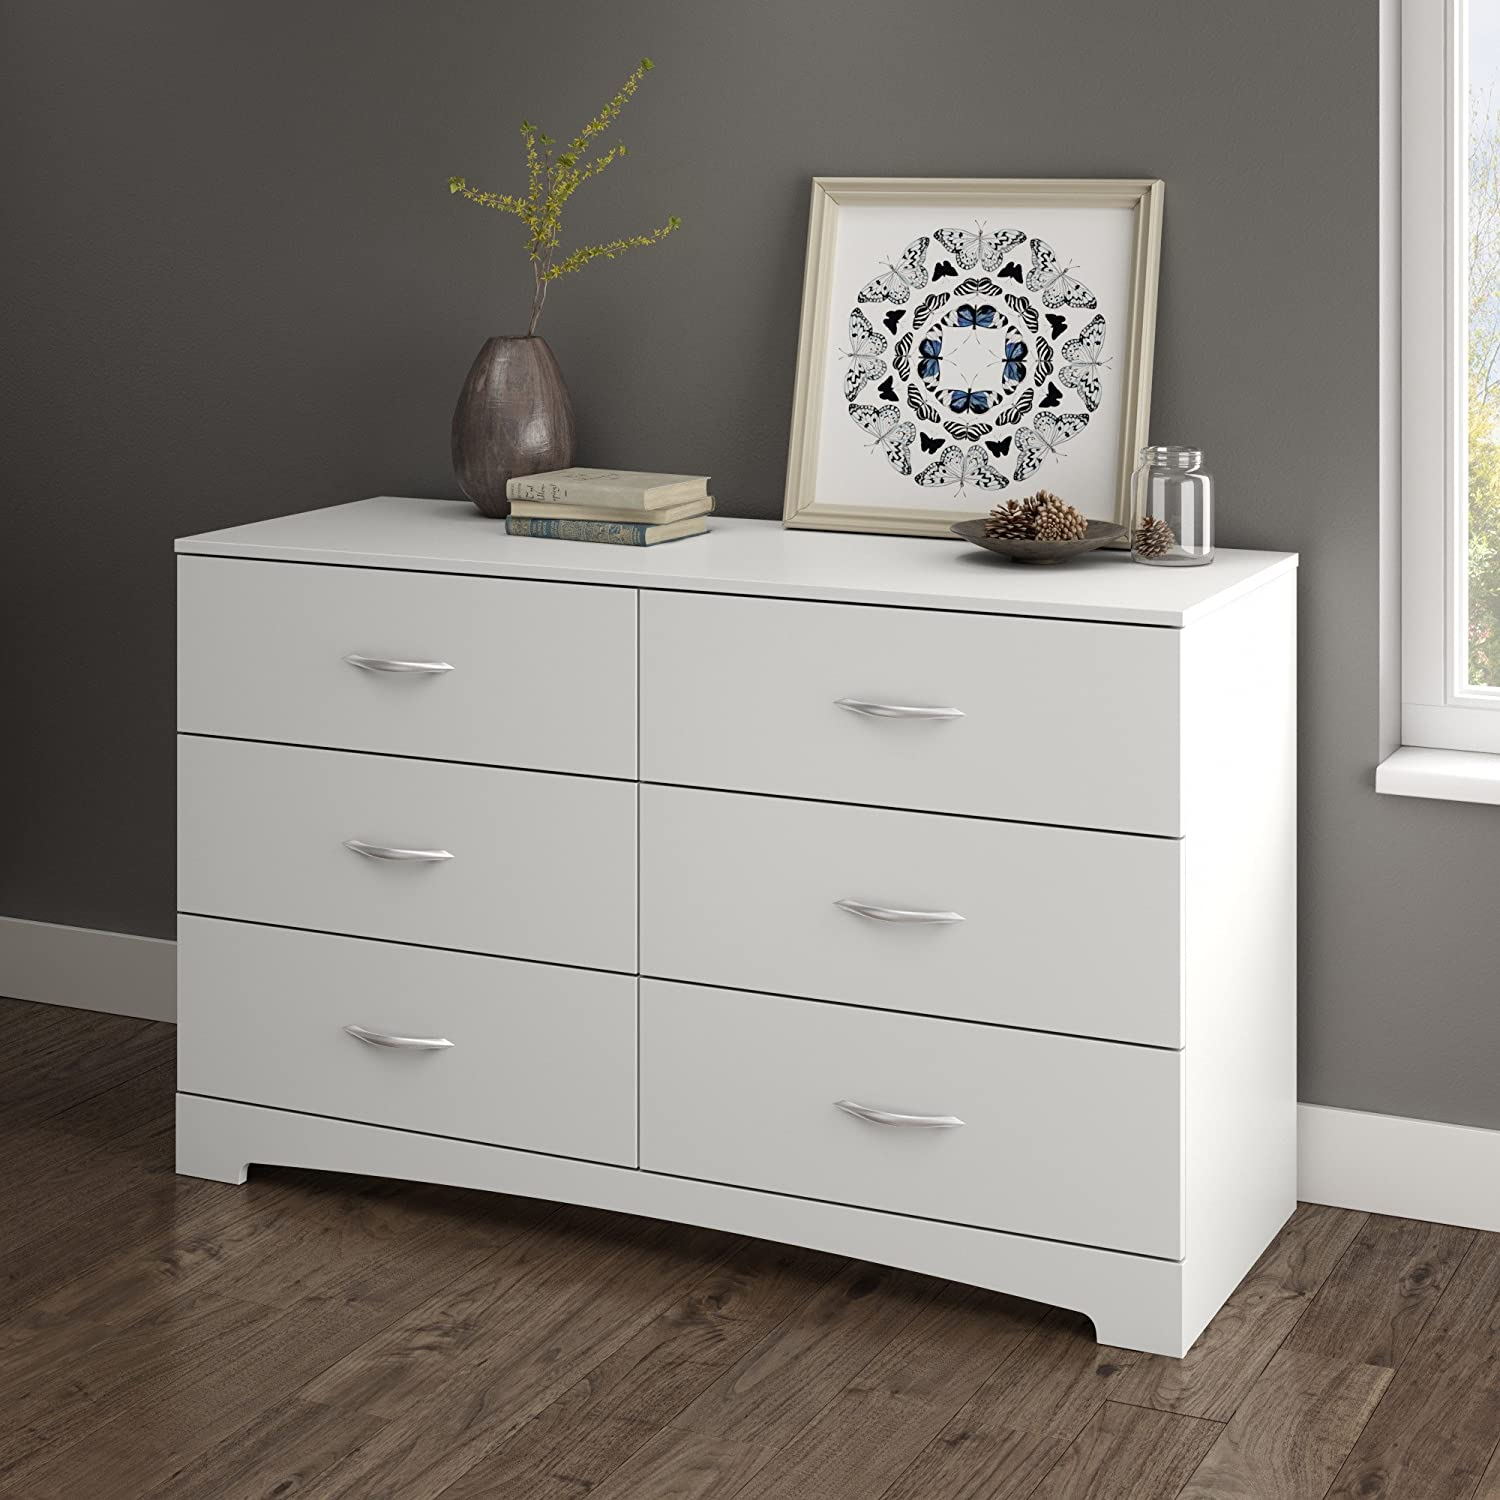 Beau Amazon.com: South Shore Step One 6 Drawer Double Dresser, White With Matte  Nickel Handles: Kitchen U0026 Dining